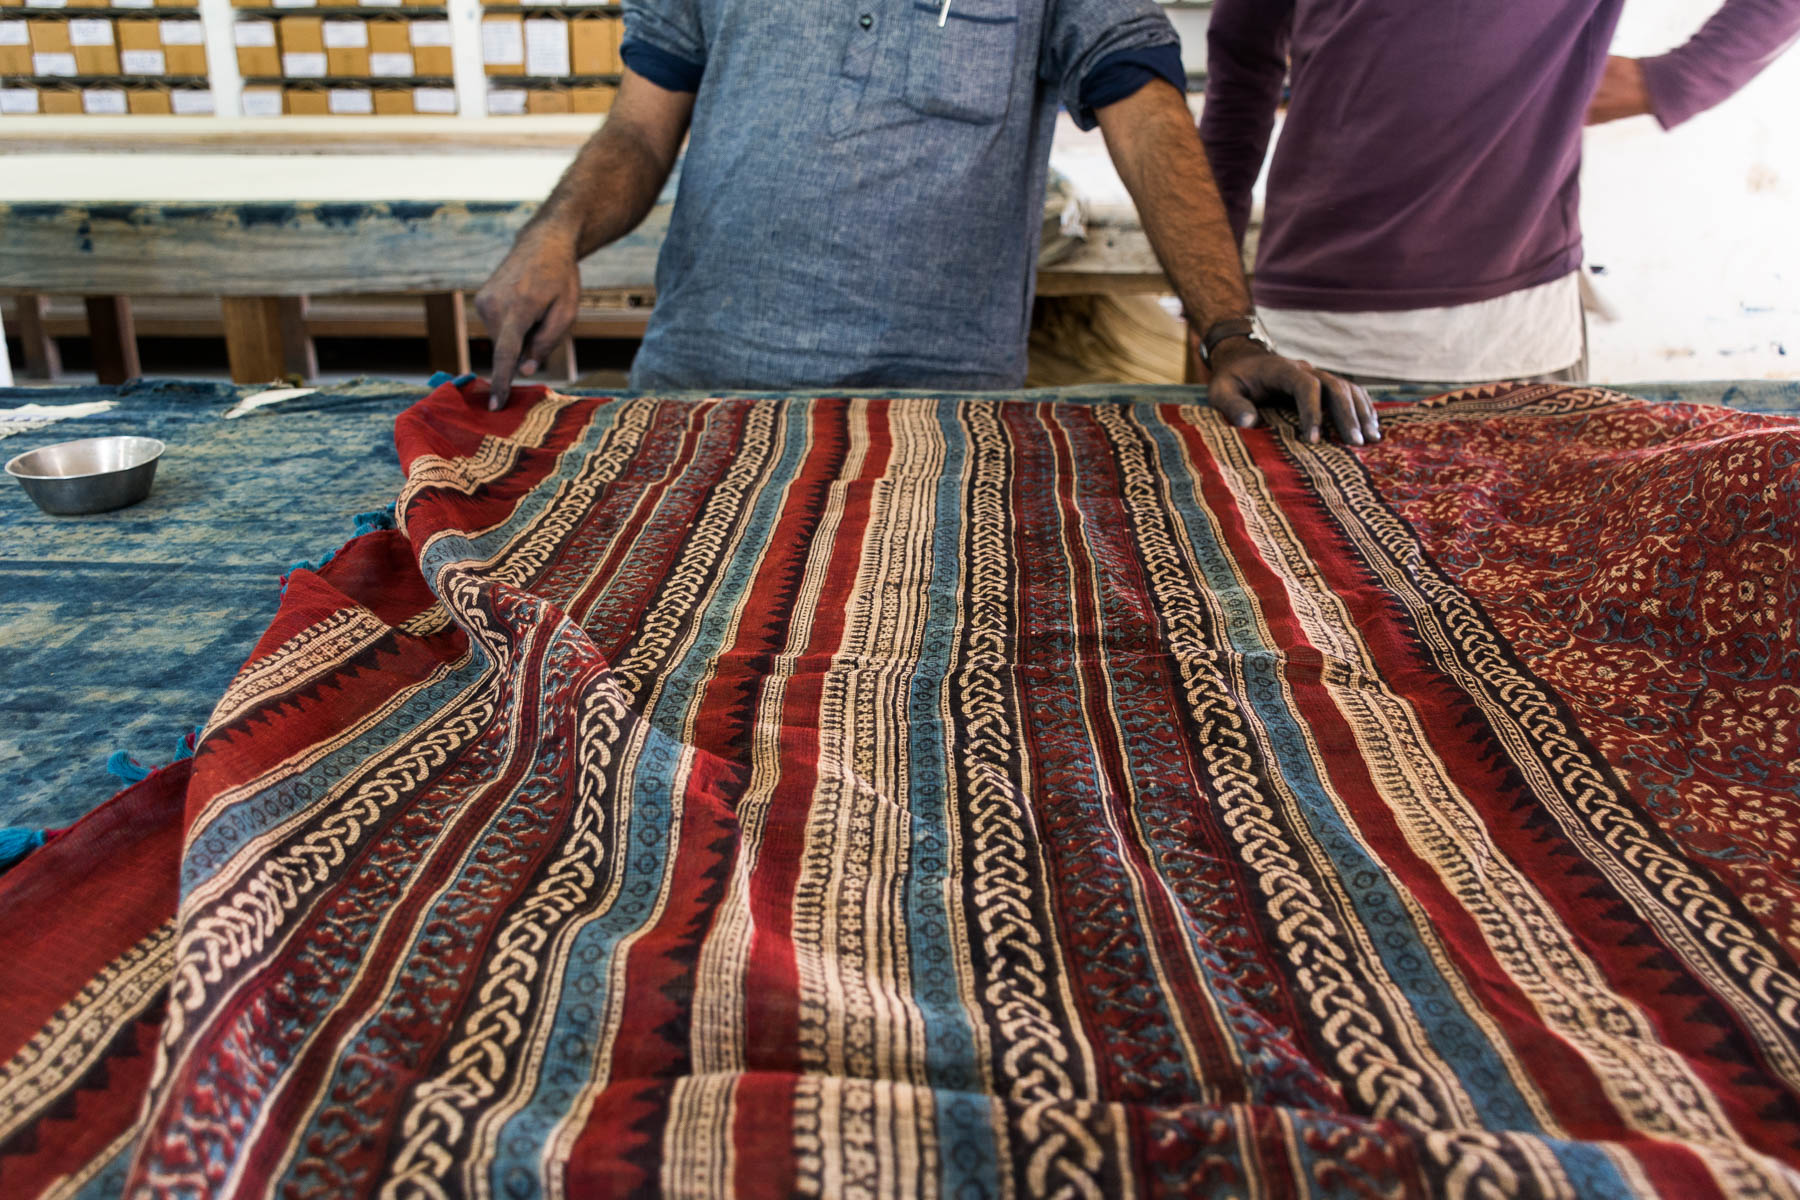 Textiles and crafts of Kutch, Gujarat, India - Traditional Ajrakh block printing designs - Lost With Purpose